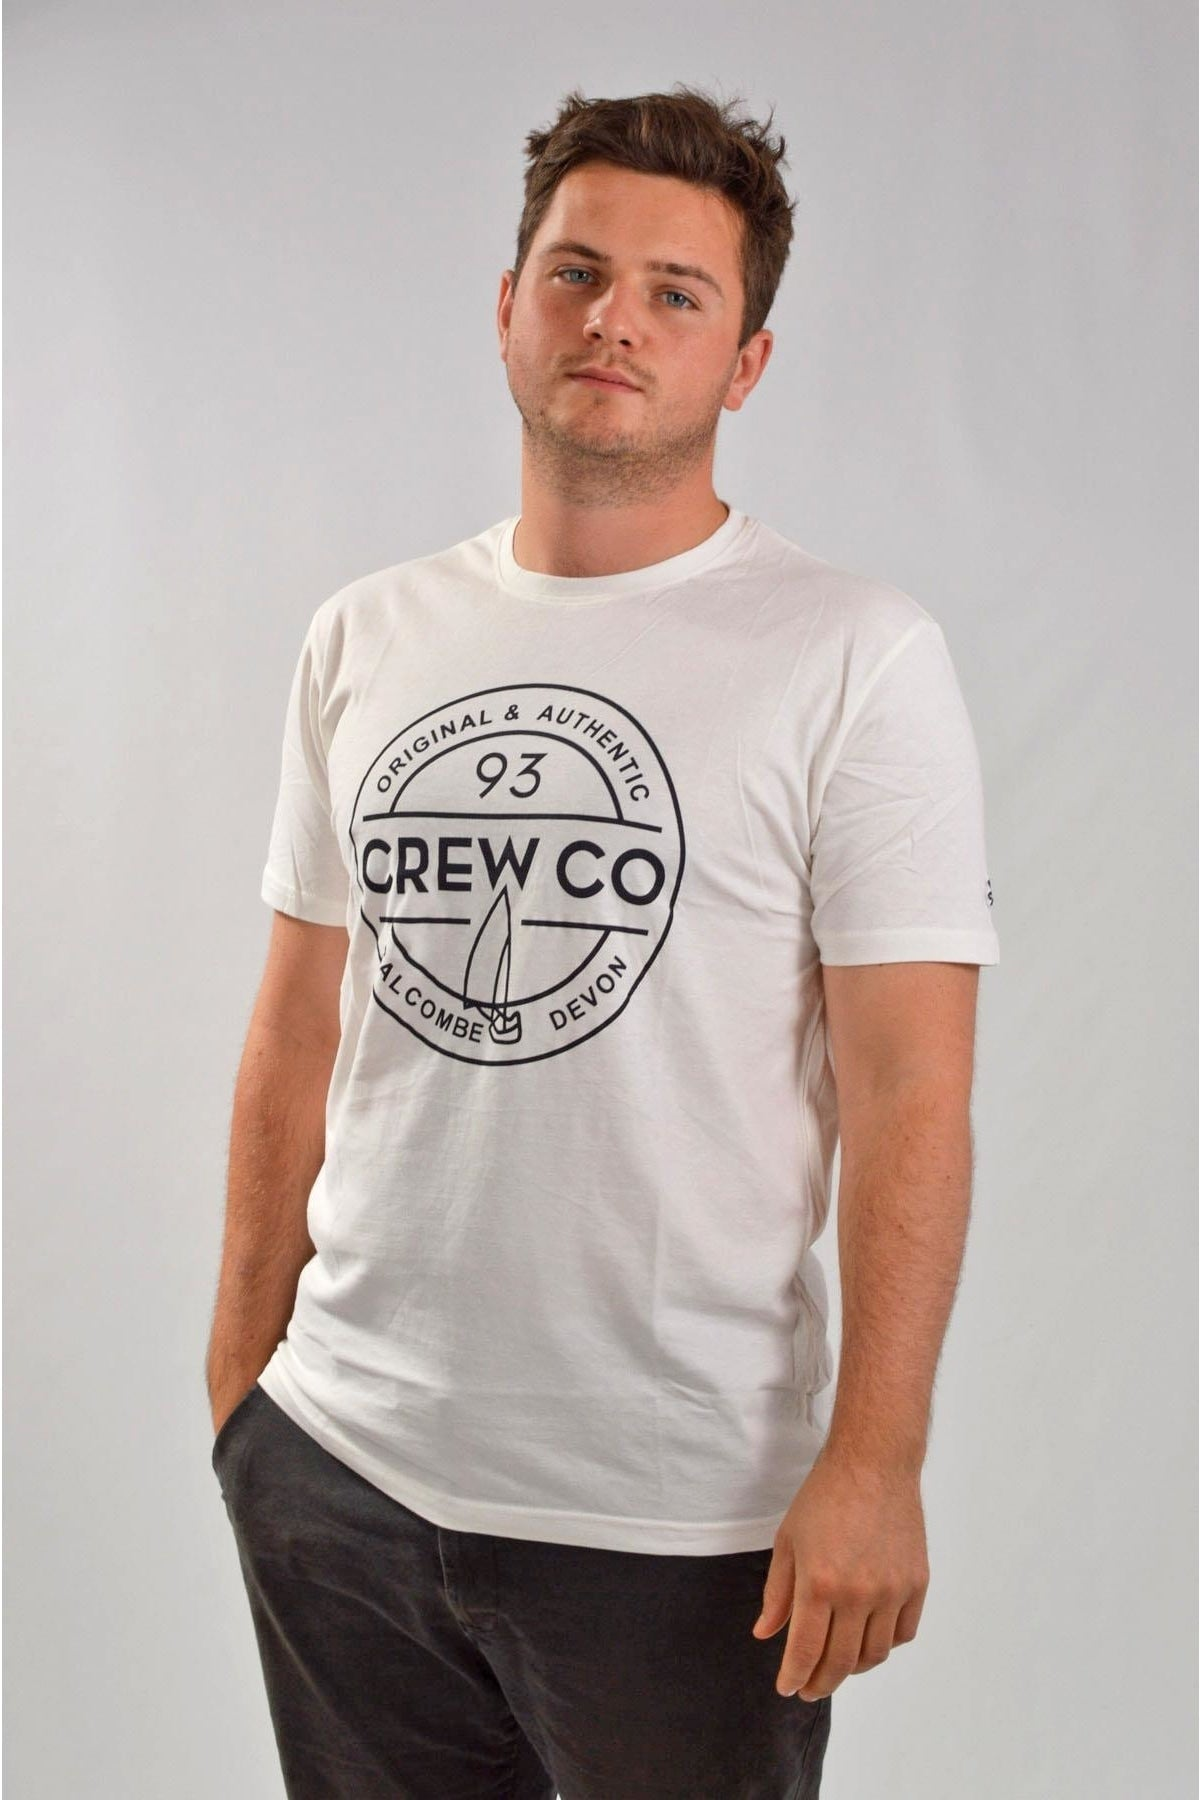 Crew Clothing Crew Clothing Mens Crew Logo T-Shirts | XL / Ivory (Original) Secret Label